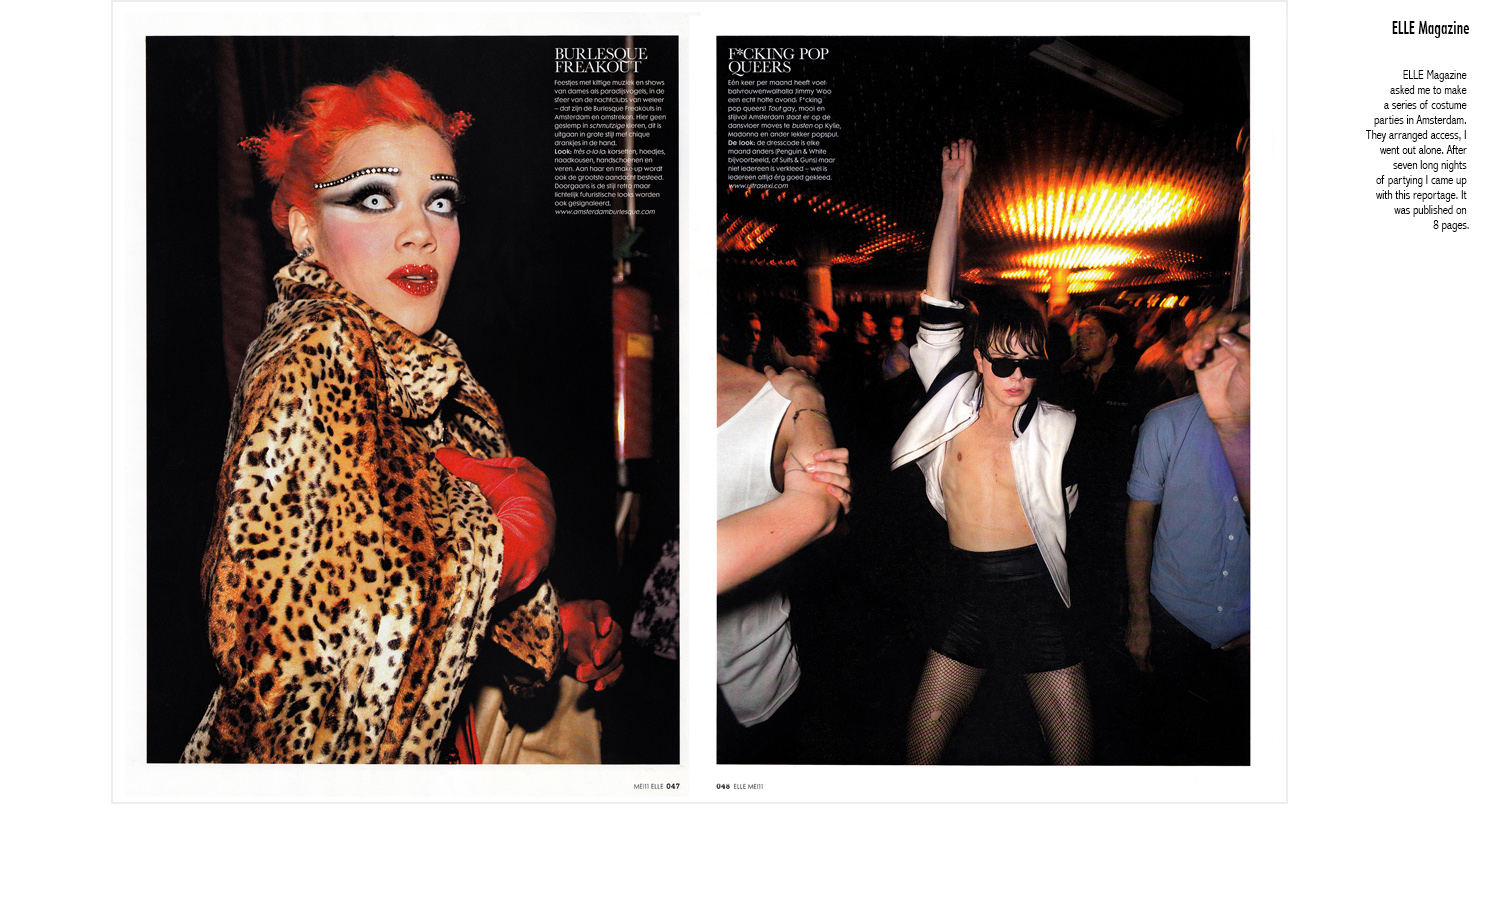 ELLE Magazine   asked me to make a series of costume parties in Amsterdam. They arranged access, I went out alone. After seven long nights partying I produced a reportage that was published on 8 pages.